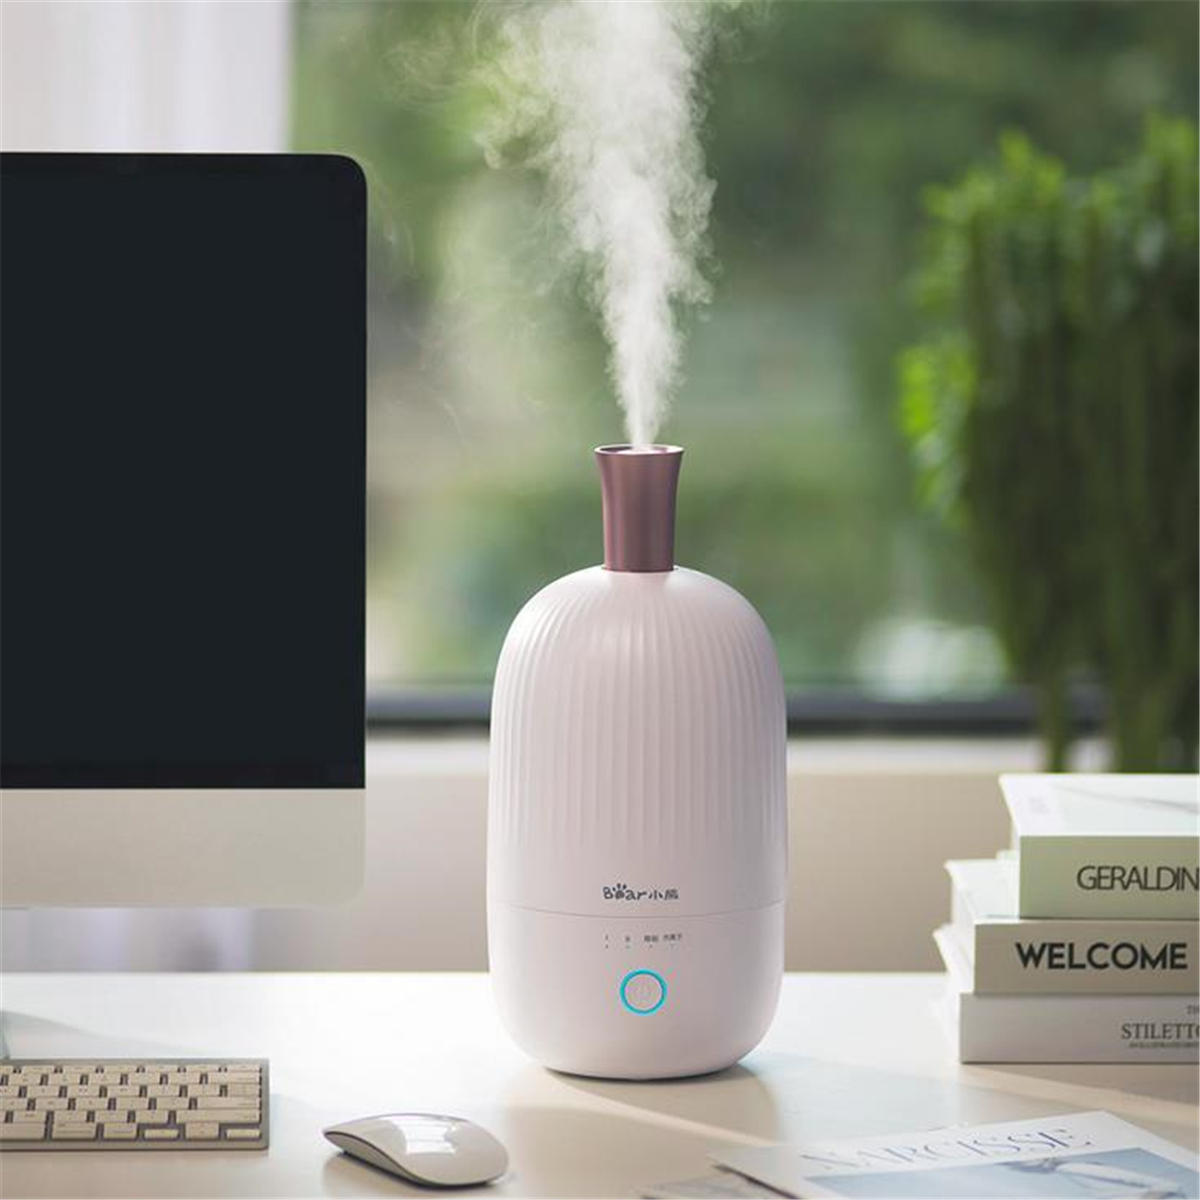 Bear JSQ-B20L1 2L 30W Anion Air Humidifier Aroma Diffuser Purifier Fog Mist Maker Home Office